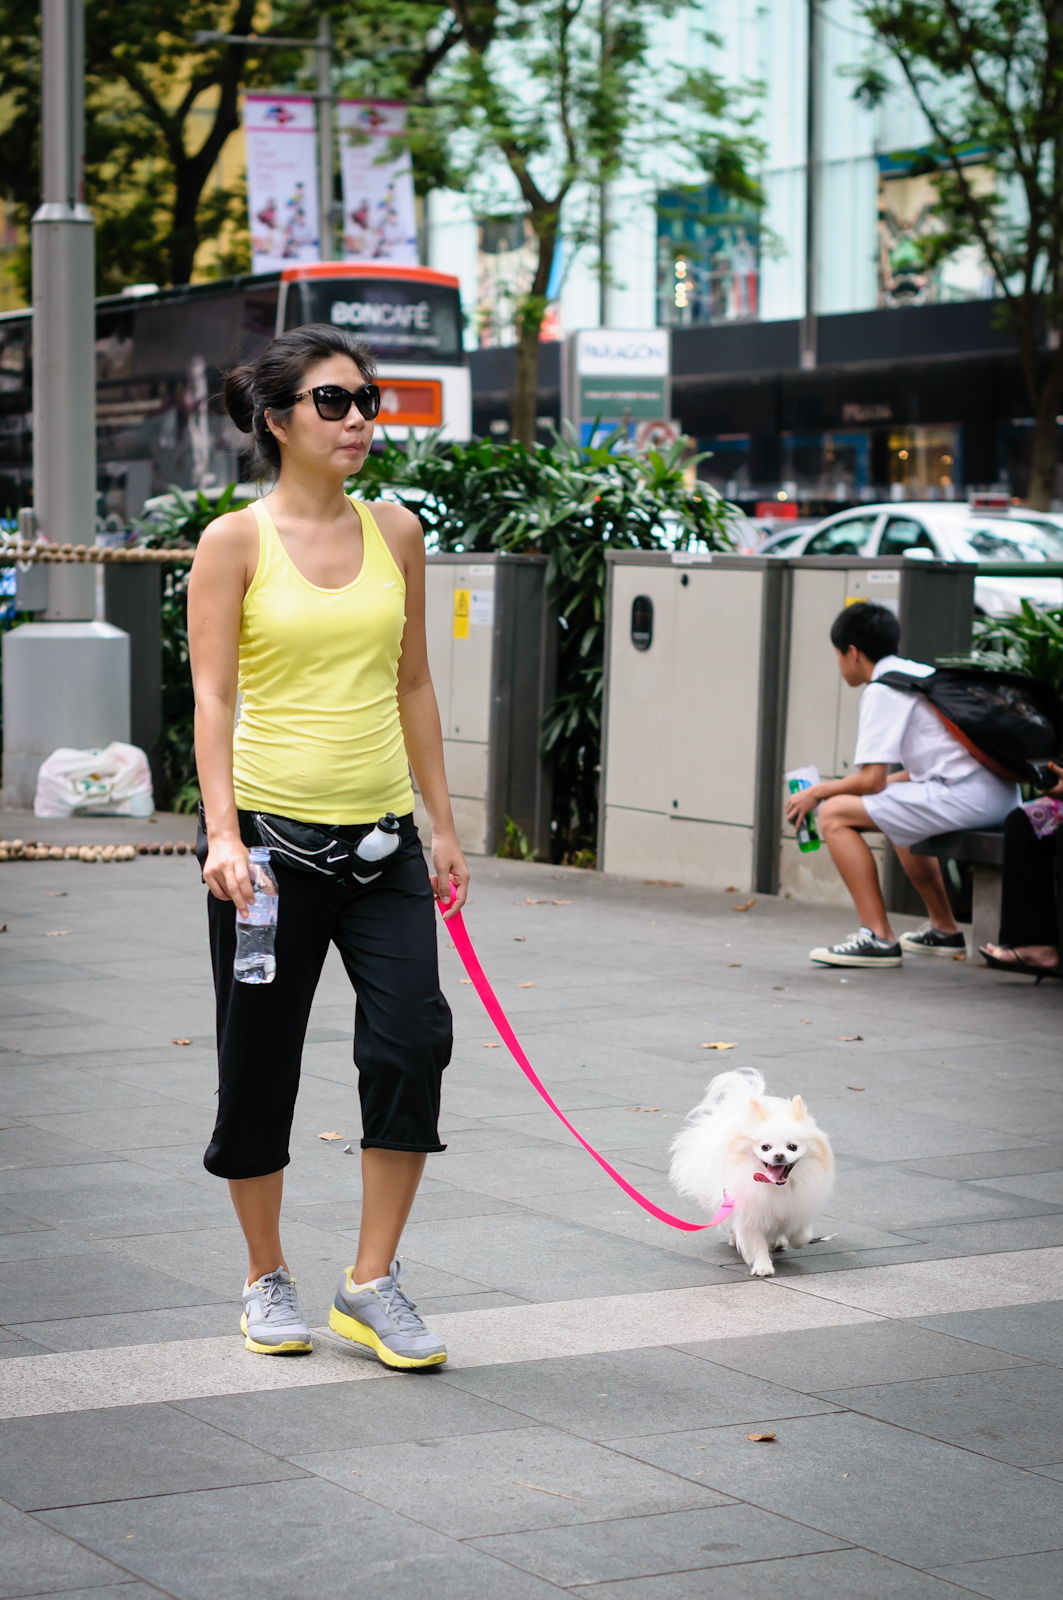 Street photography - Girl in yellow walking a dog in Orchard Road